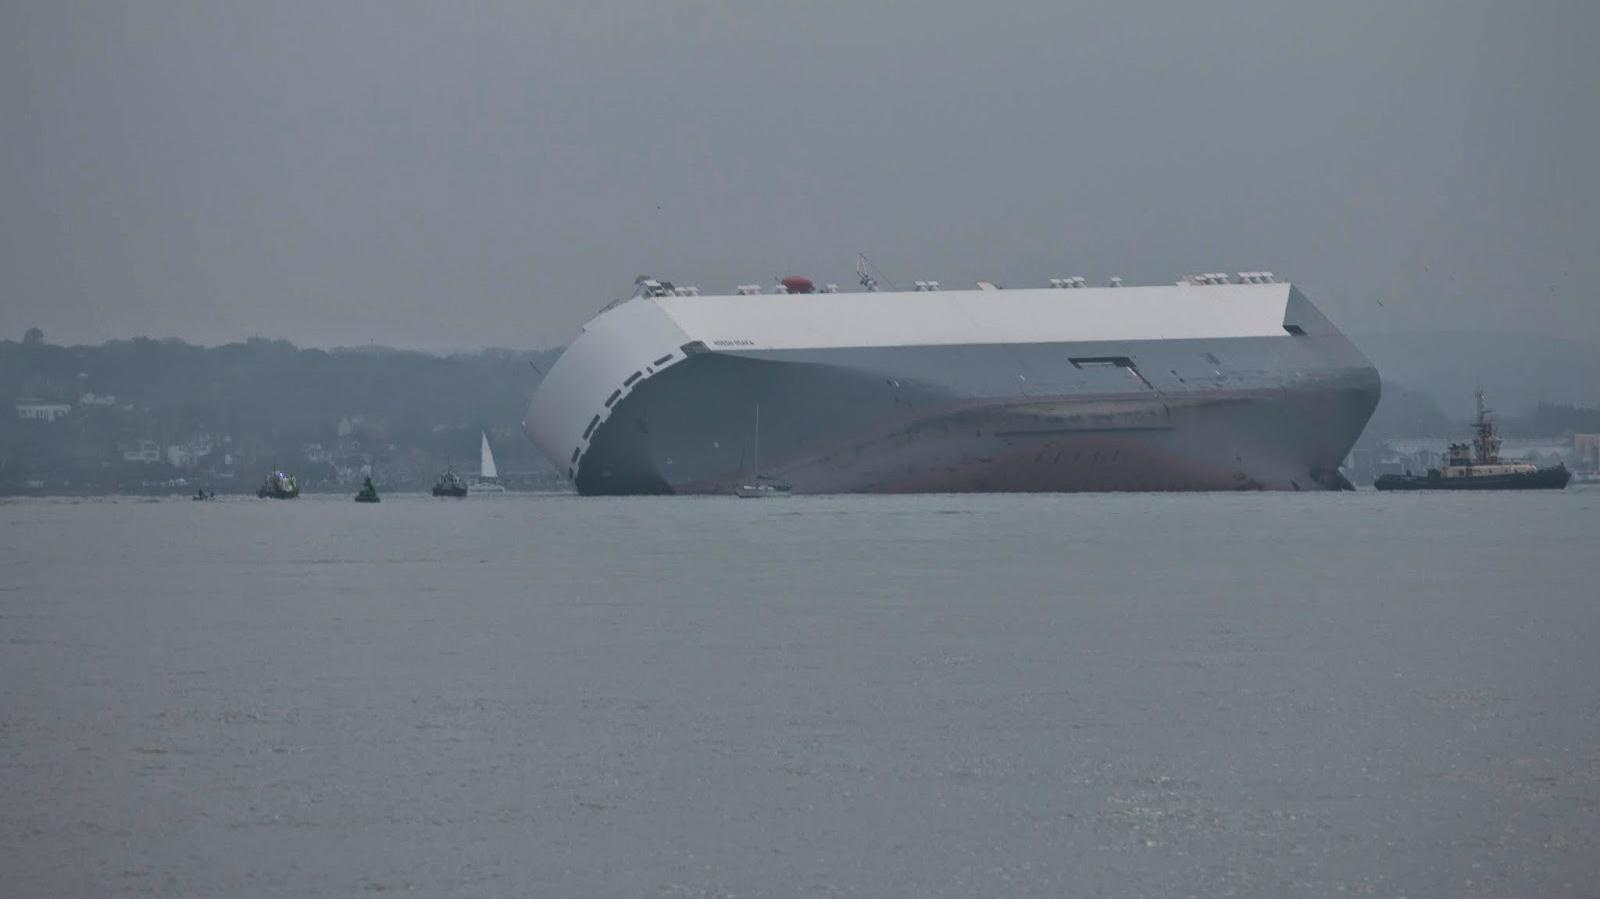 Hoegh Osaka grounded